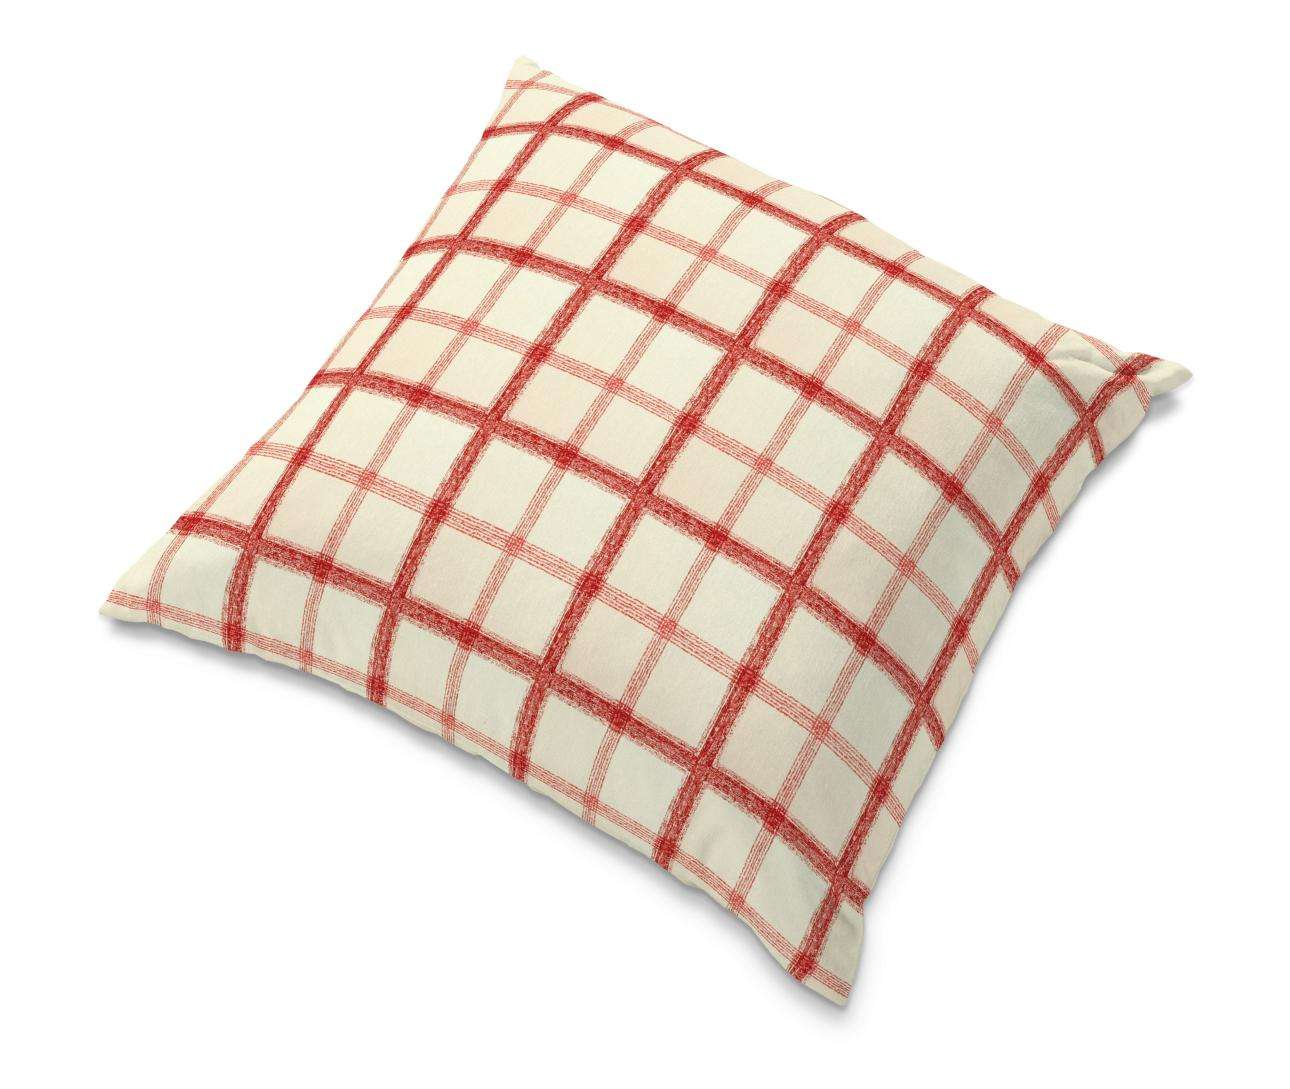 Tomelilla cushion cover in collection Avinon, fabric: 131-15